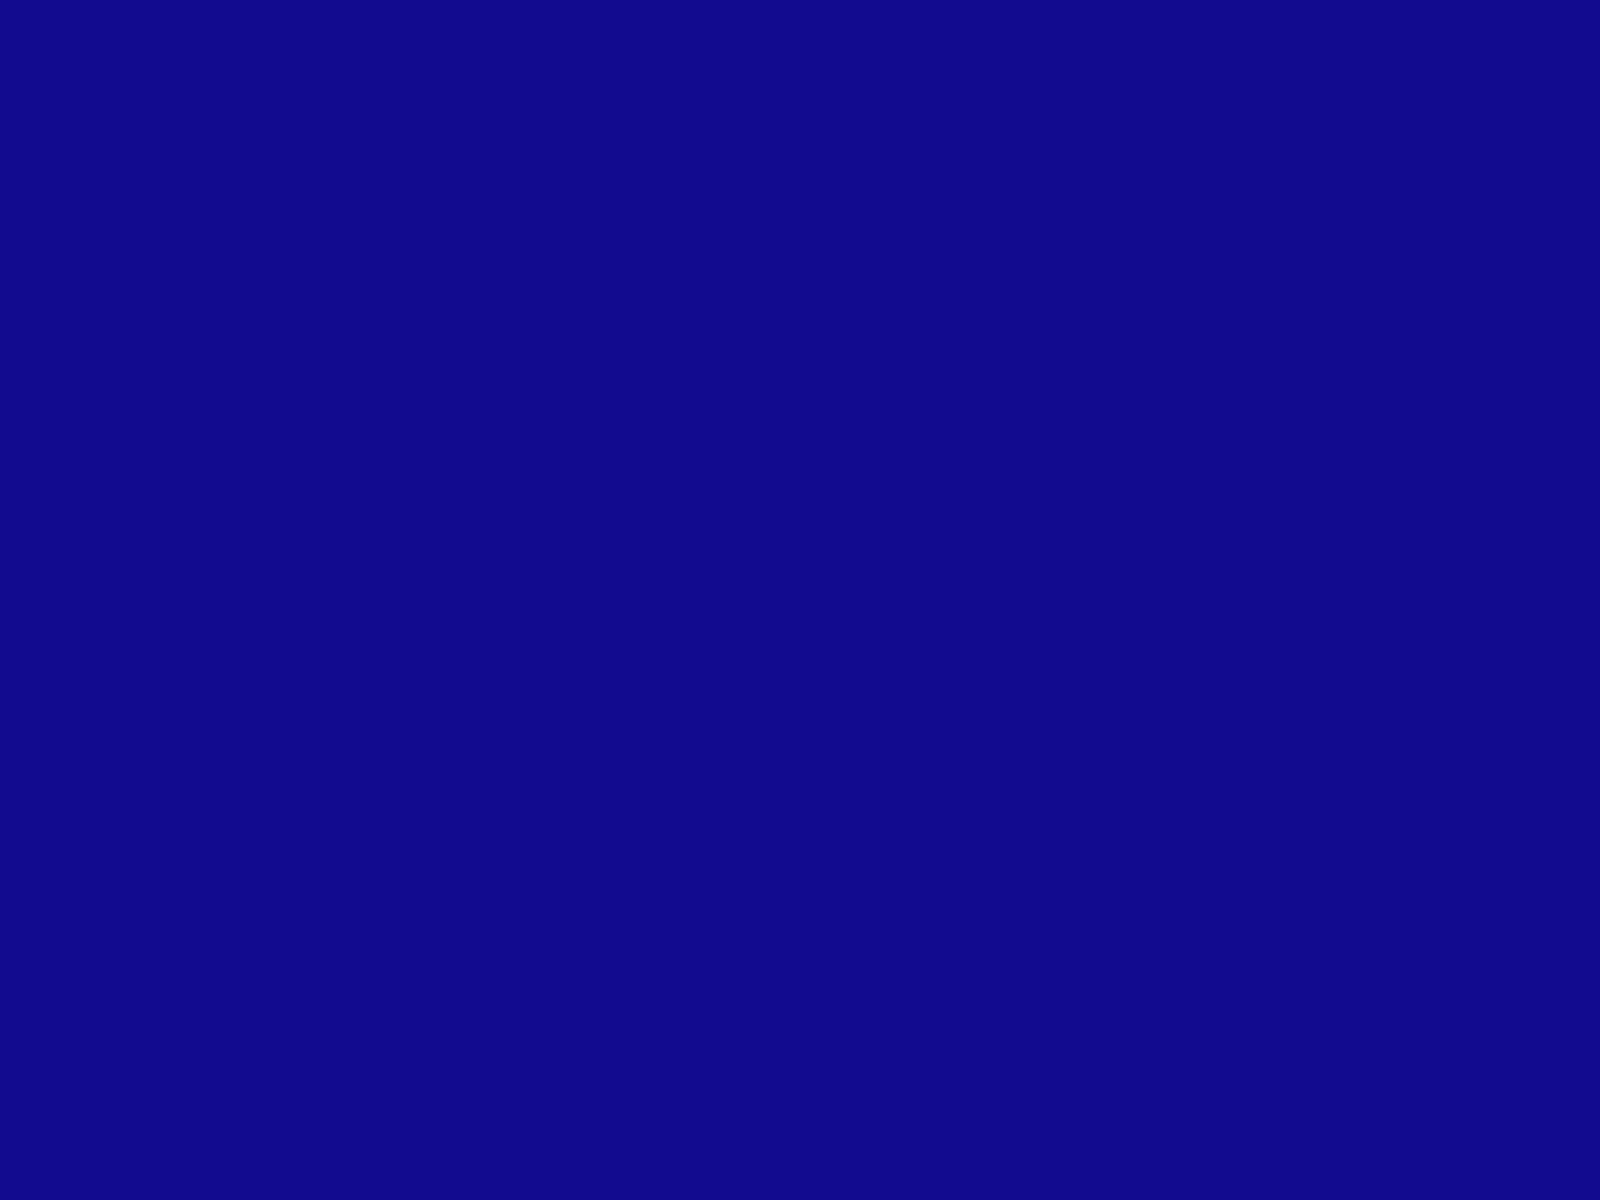 1600x1200 Ultramarine Solid Color Background 1600x1200